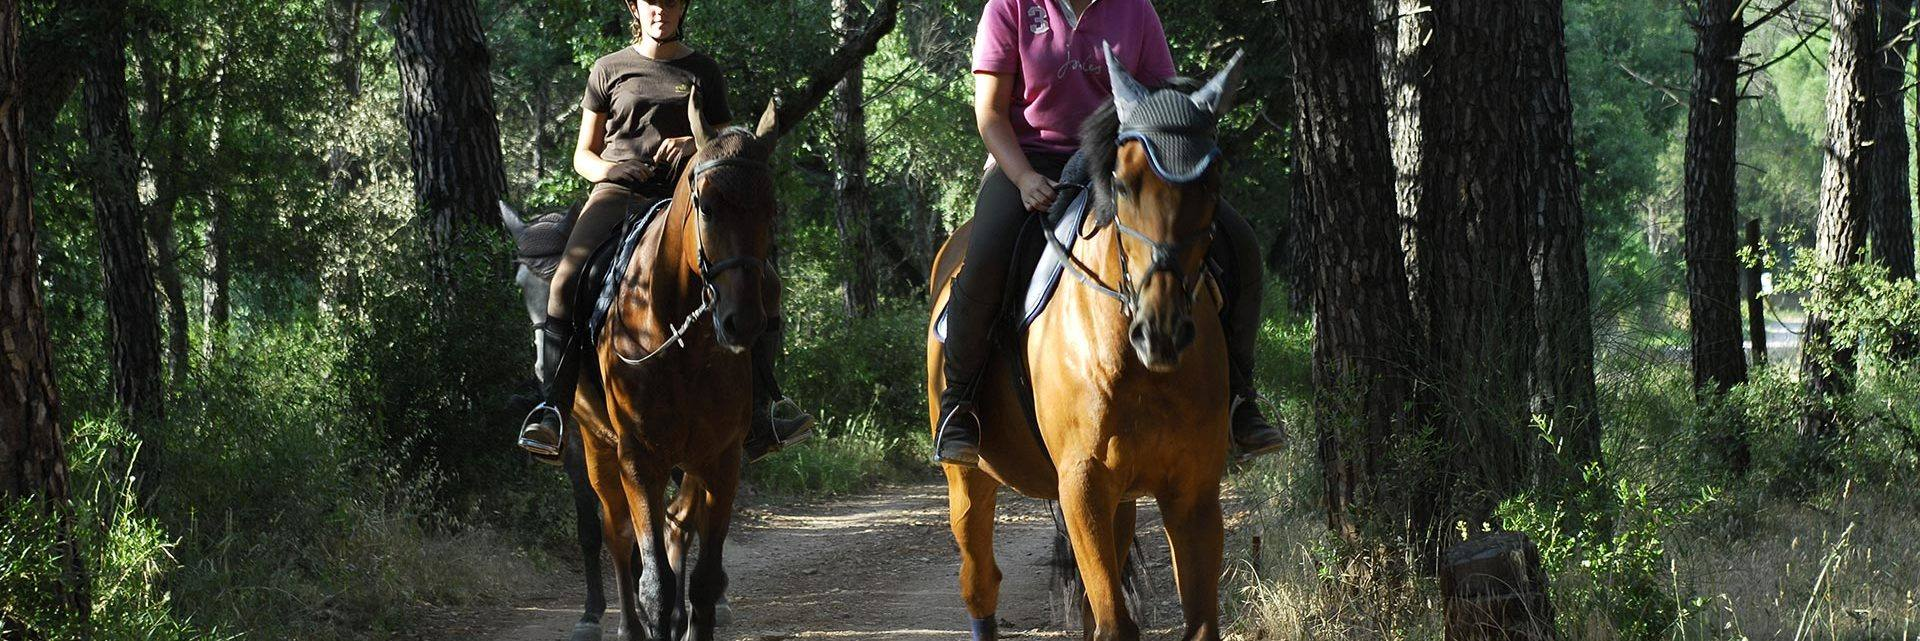 Horse-riding in the Maures Massif